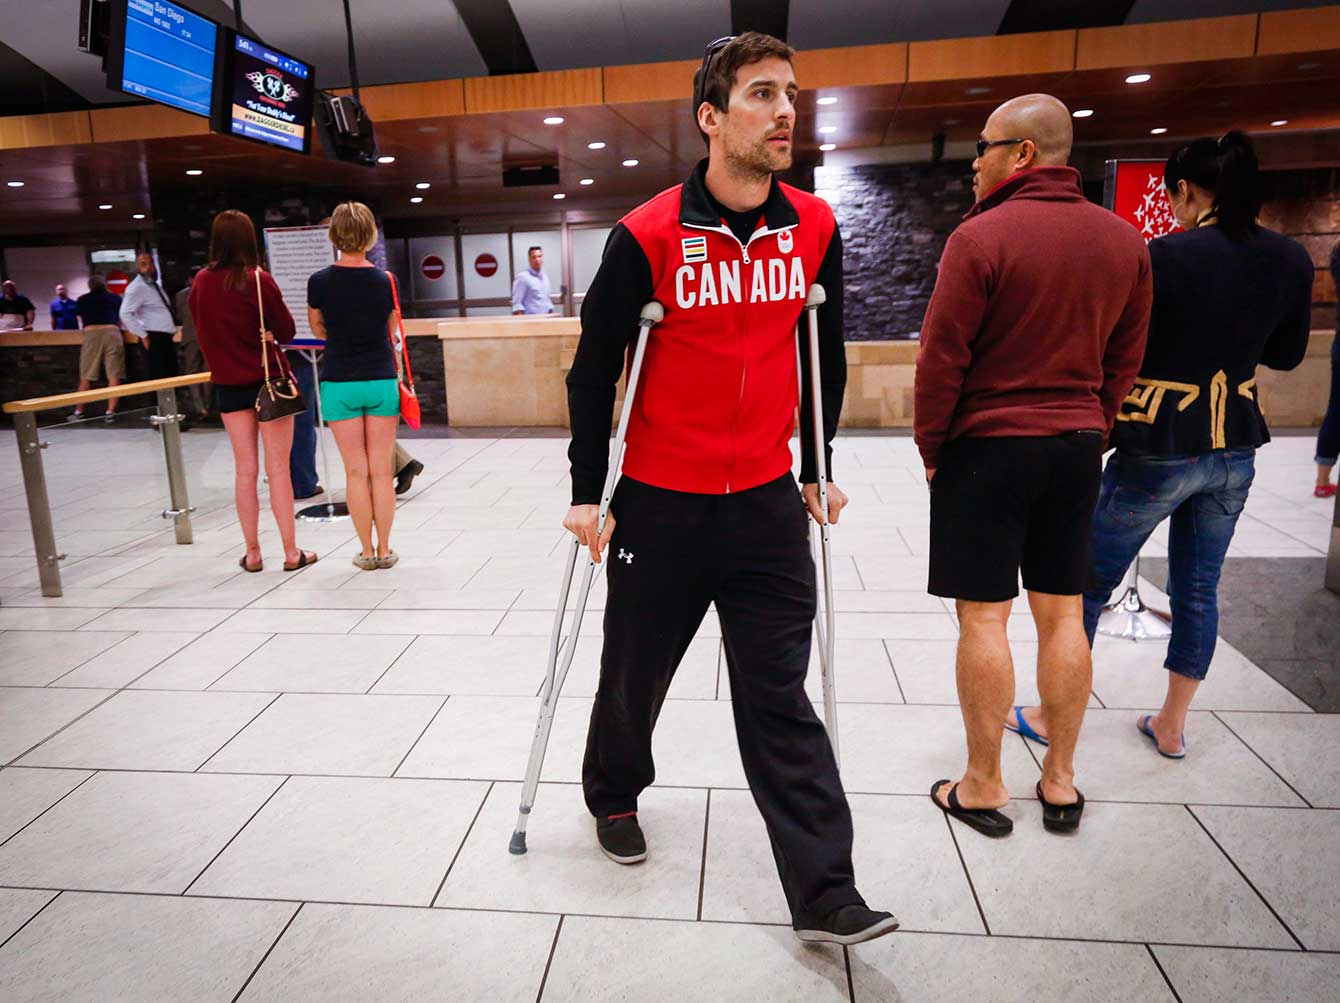 Denny Morrison walks on crutches on May 25th at the Calgary International Airport.